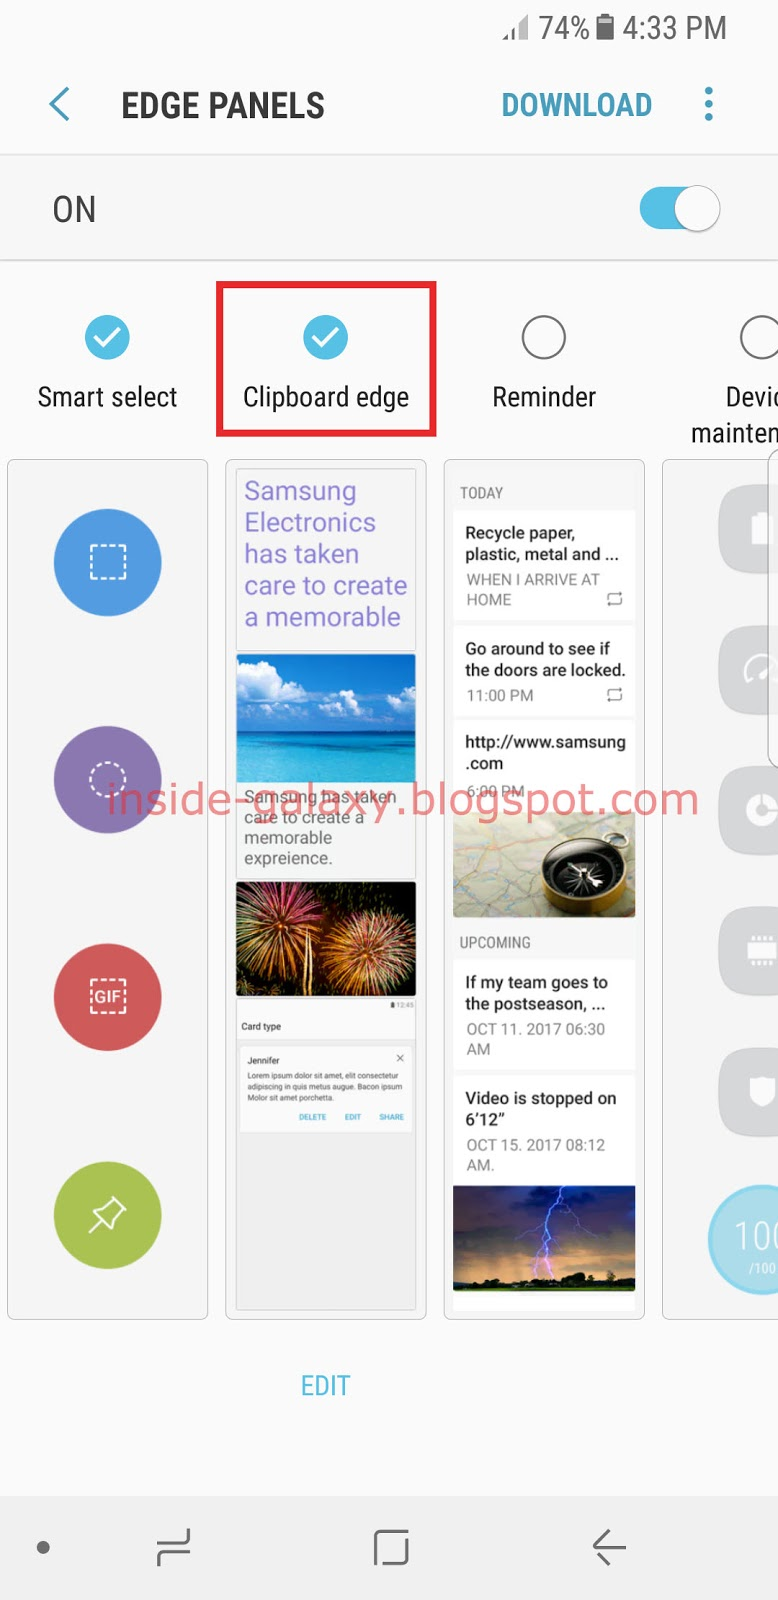 Samsung Galaxy S8: How to Enable and Use Clipboard Edge